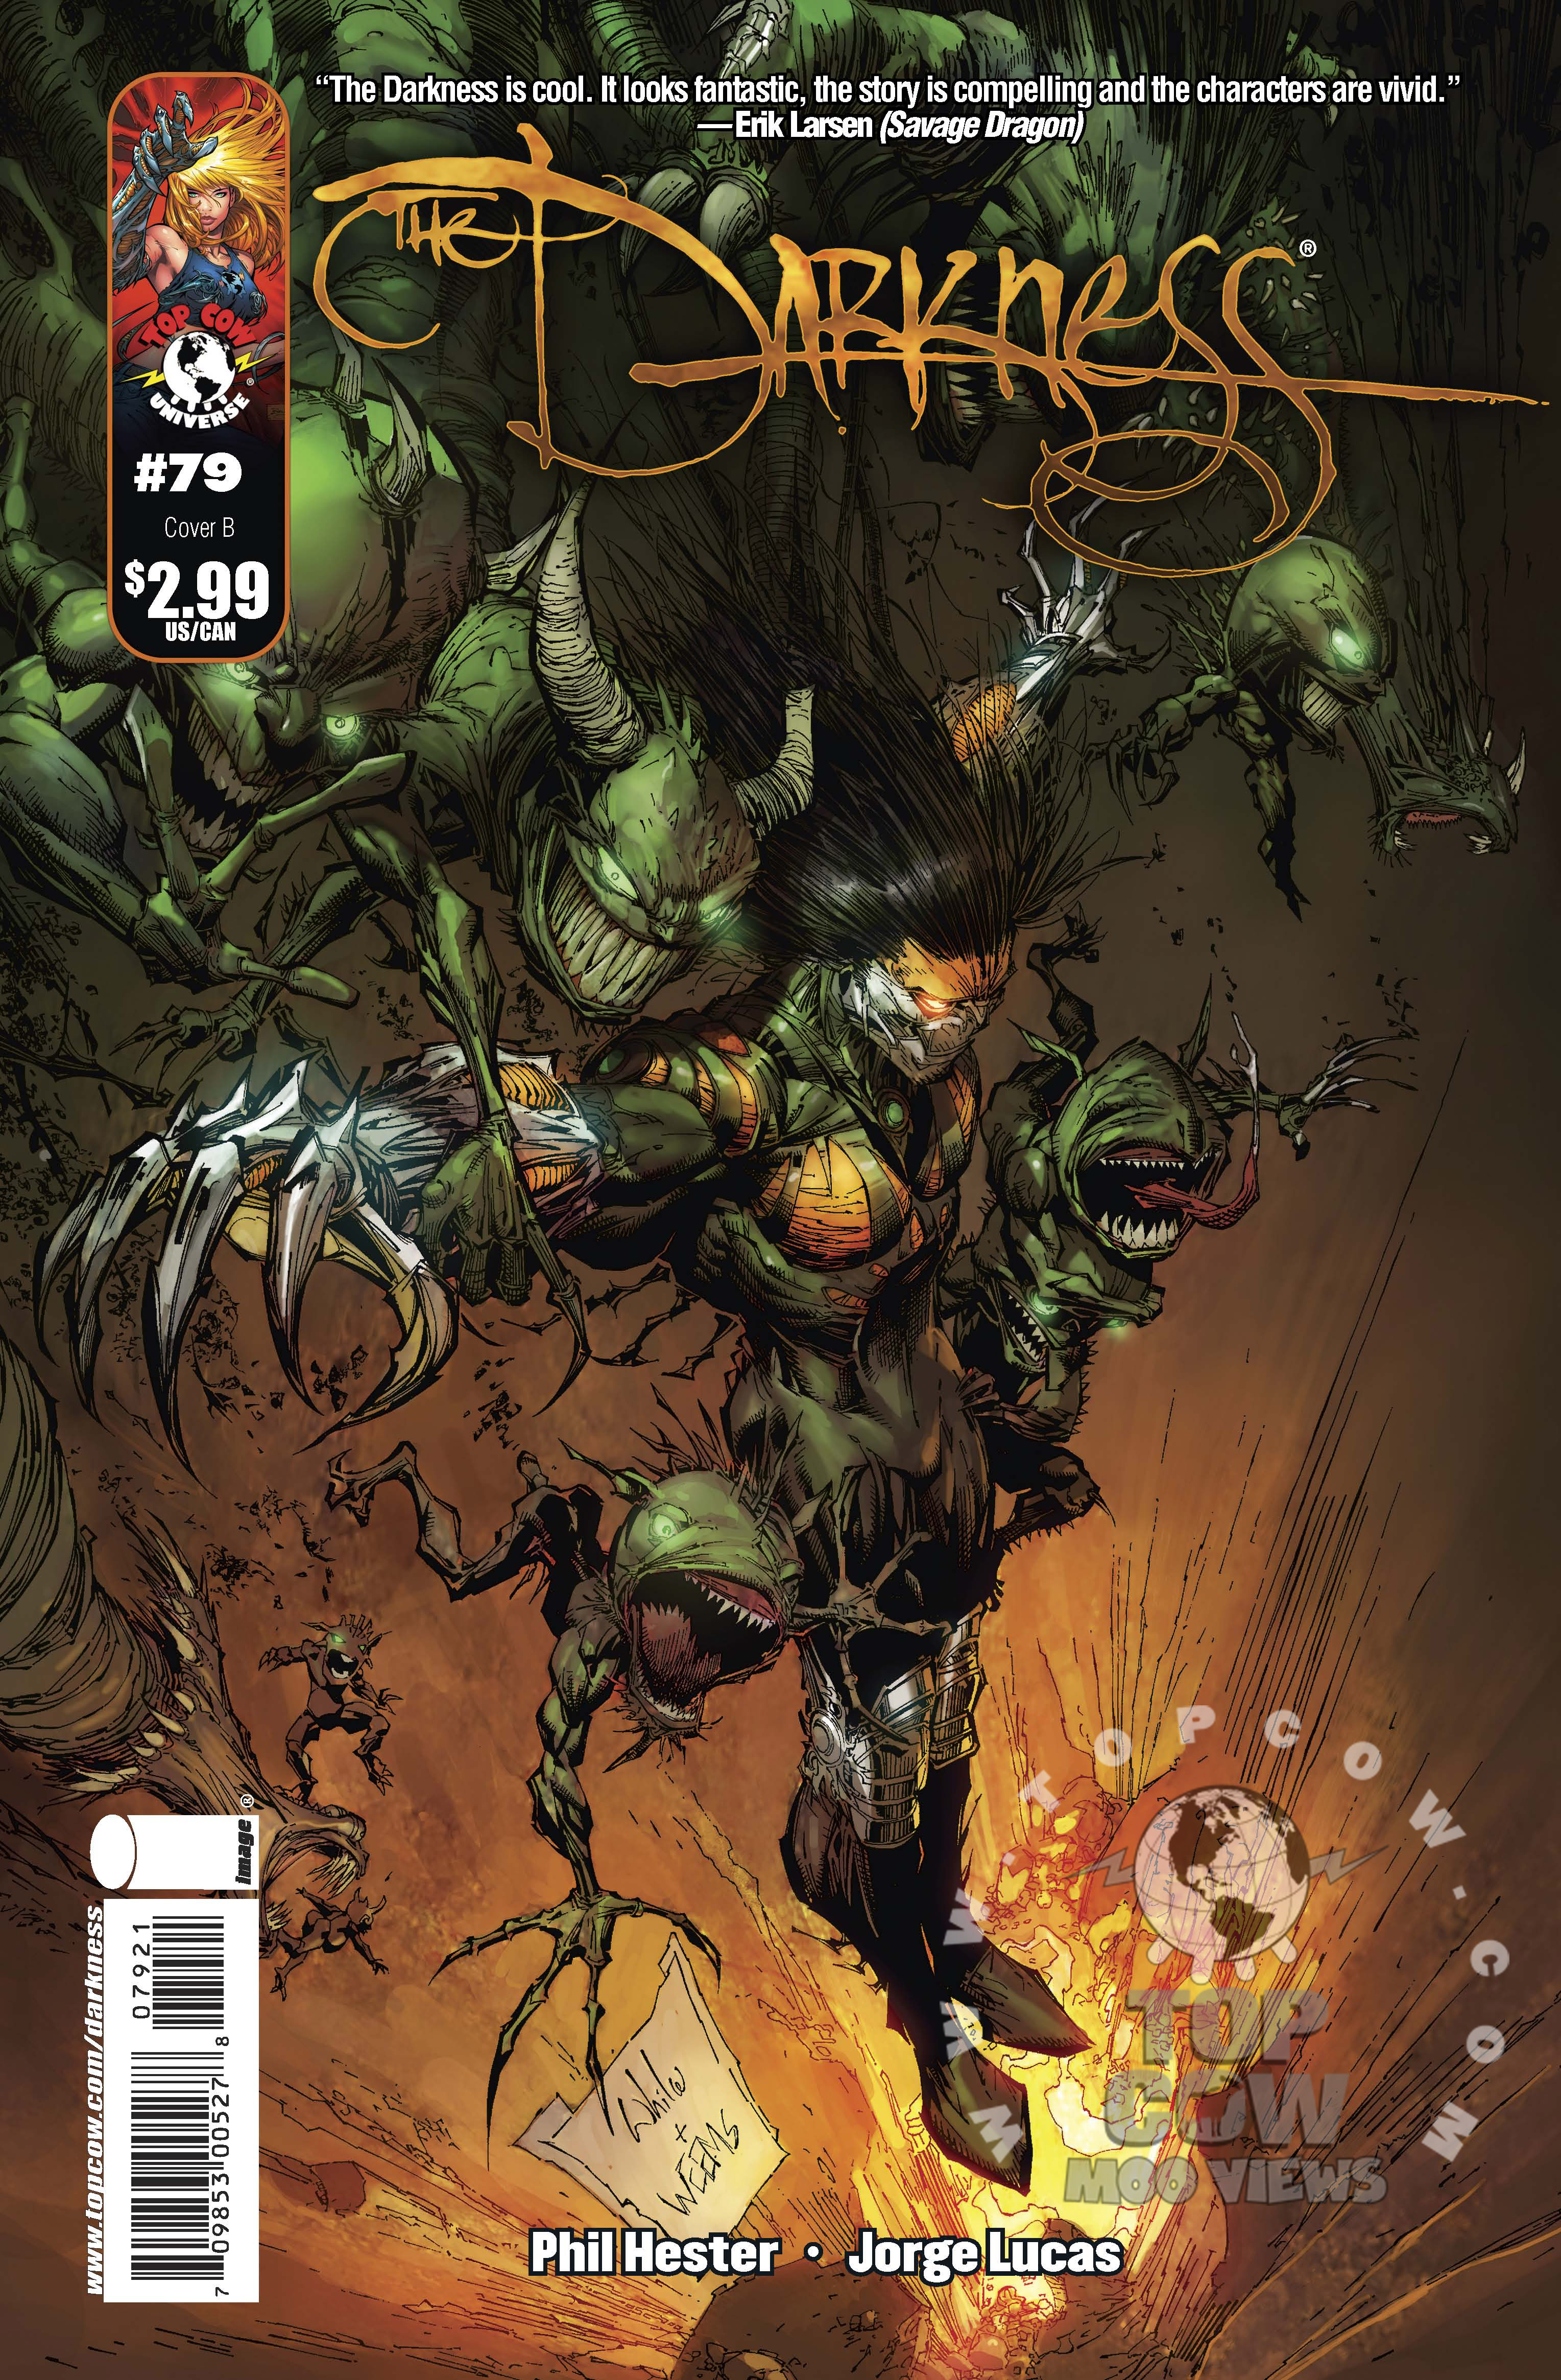 The Darkness #79 Cover B